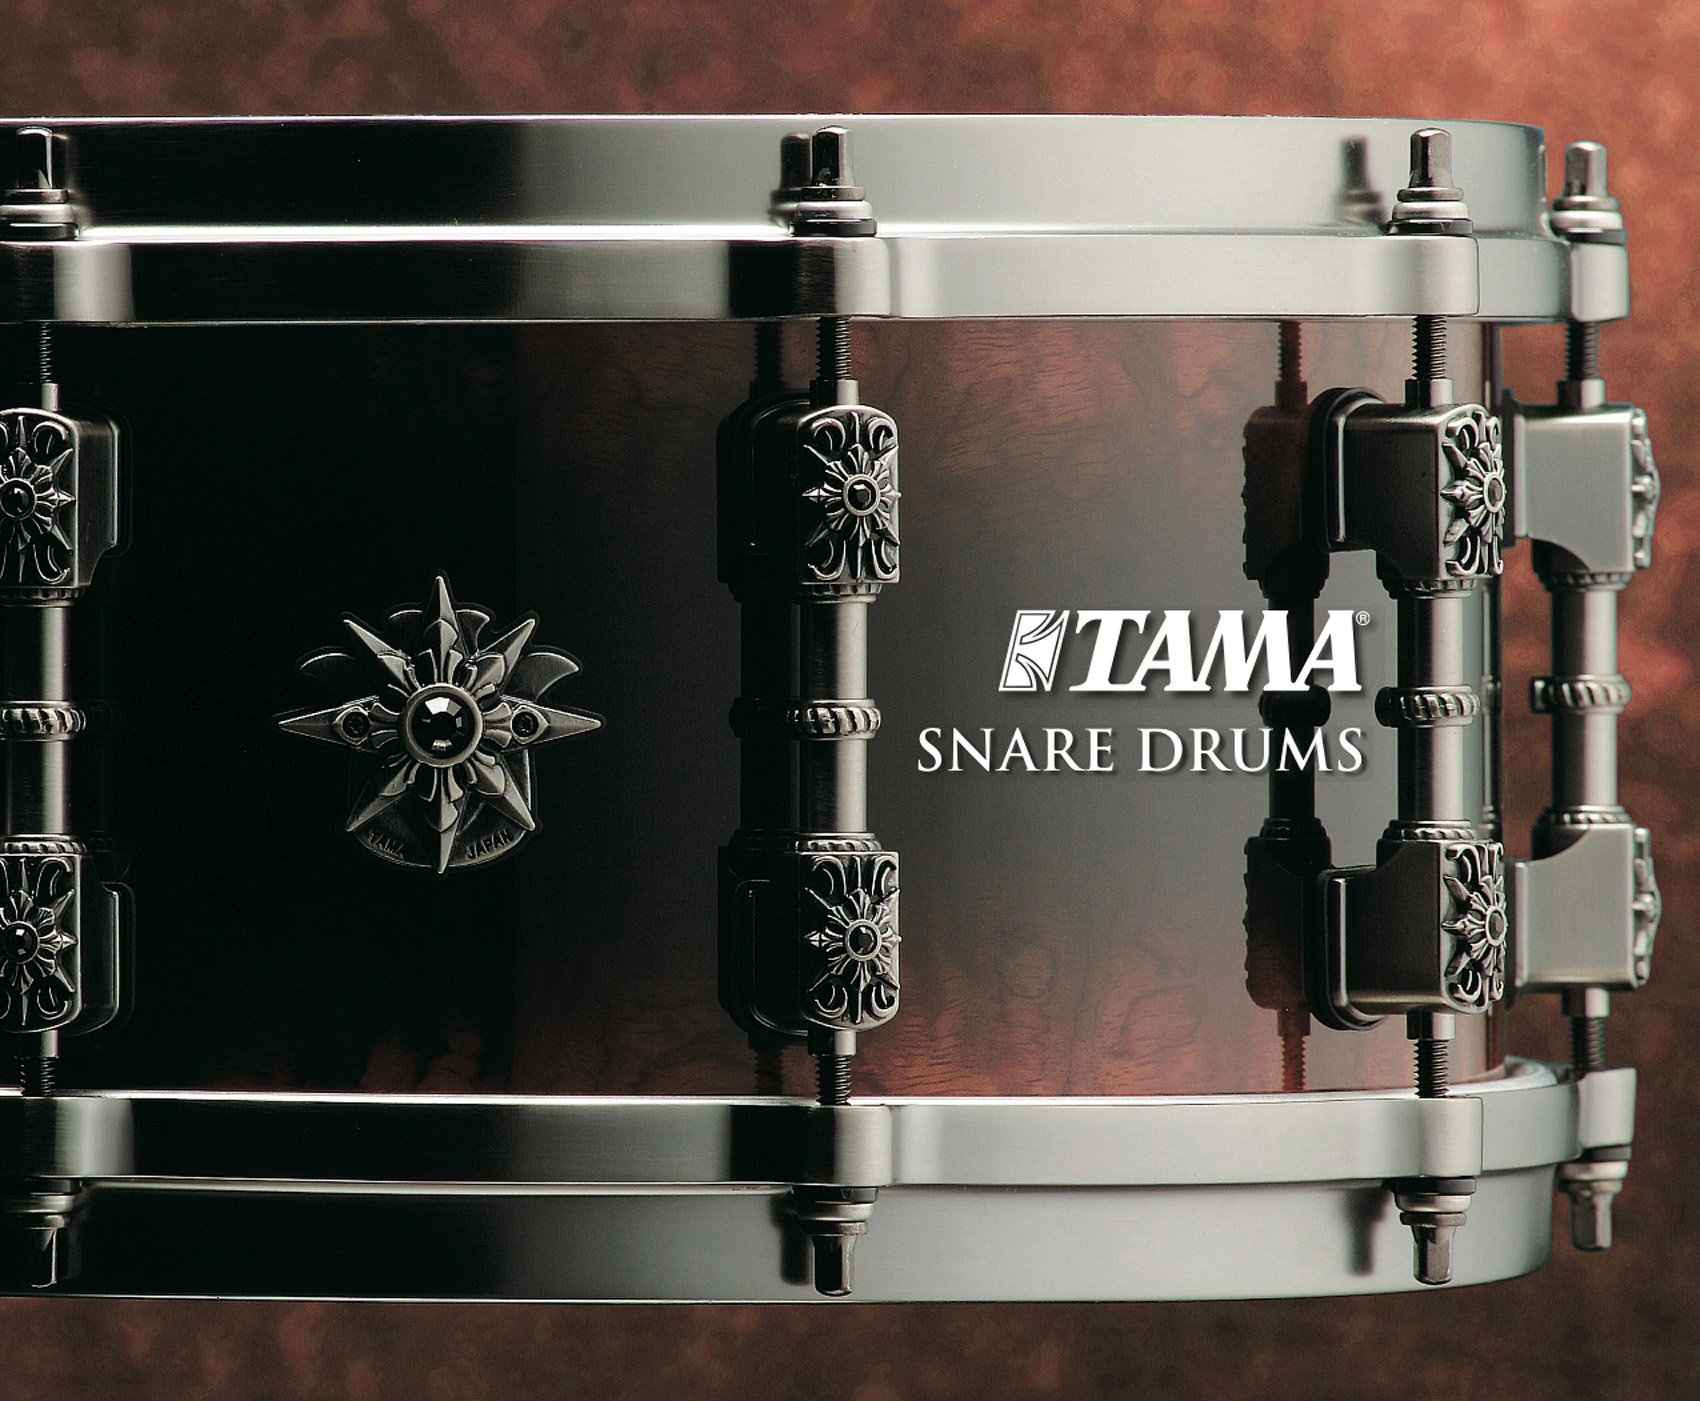 2007 Snare Drums